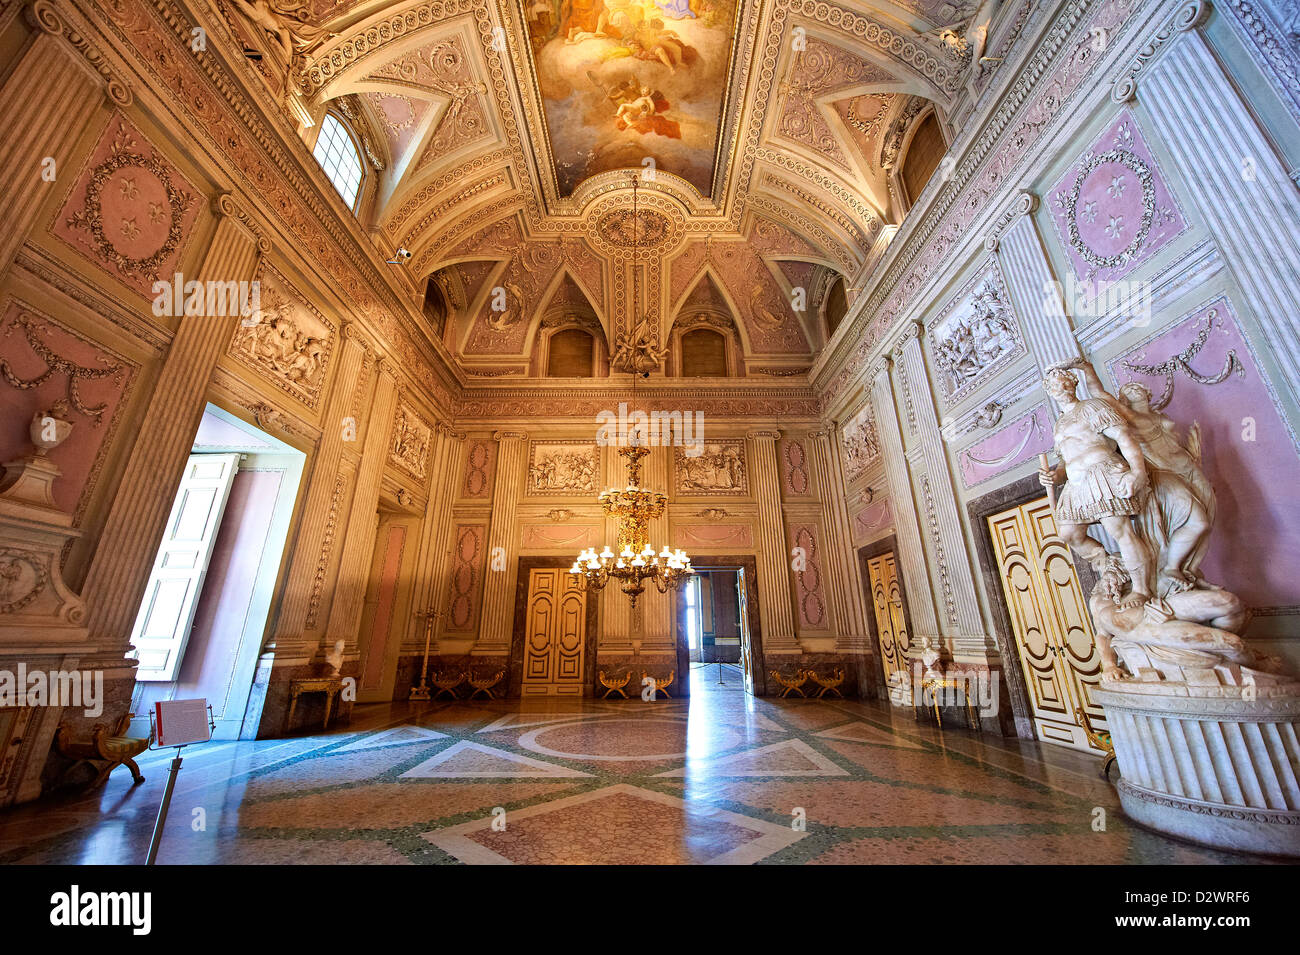 """""""The Room of the Bodyguards""""  Royal Palace of Caserta Italy Stock Photo"""